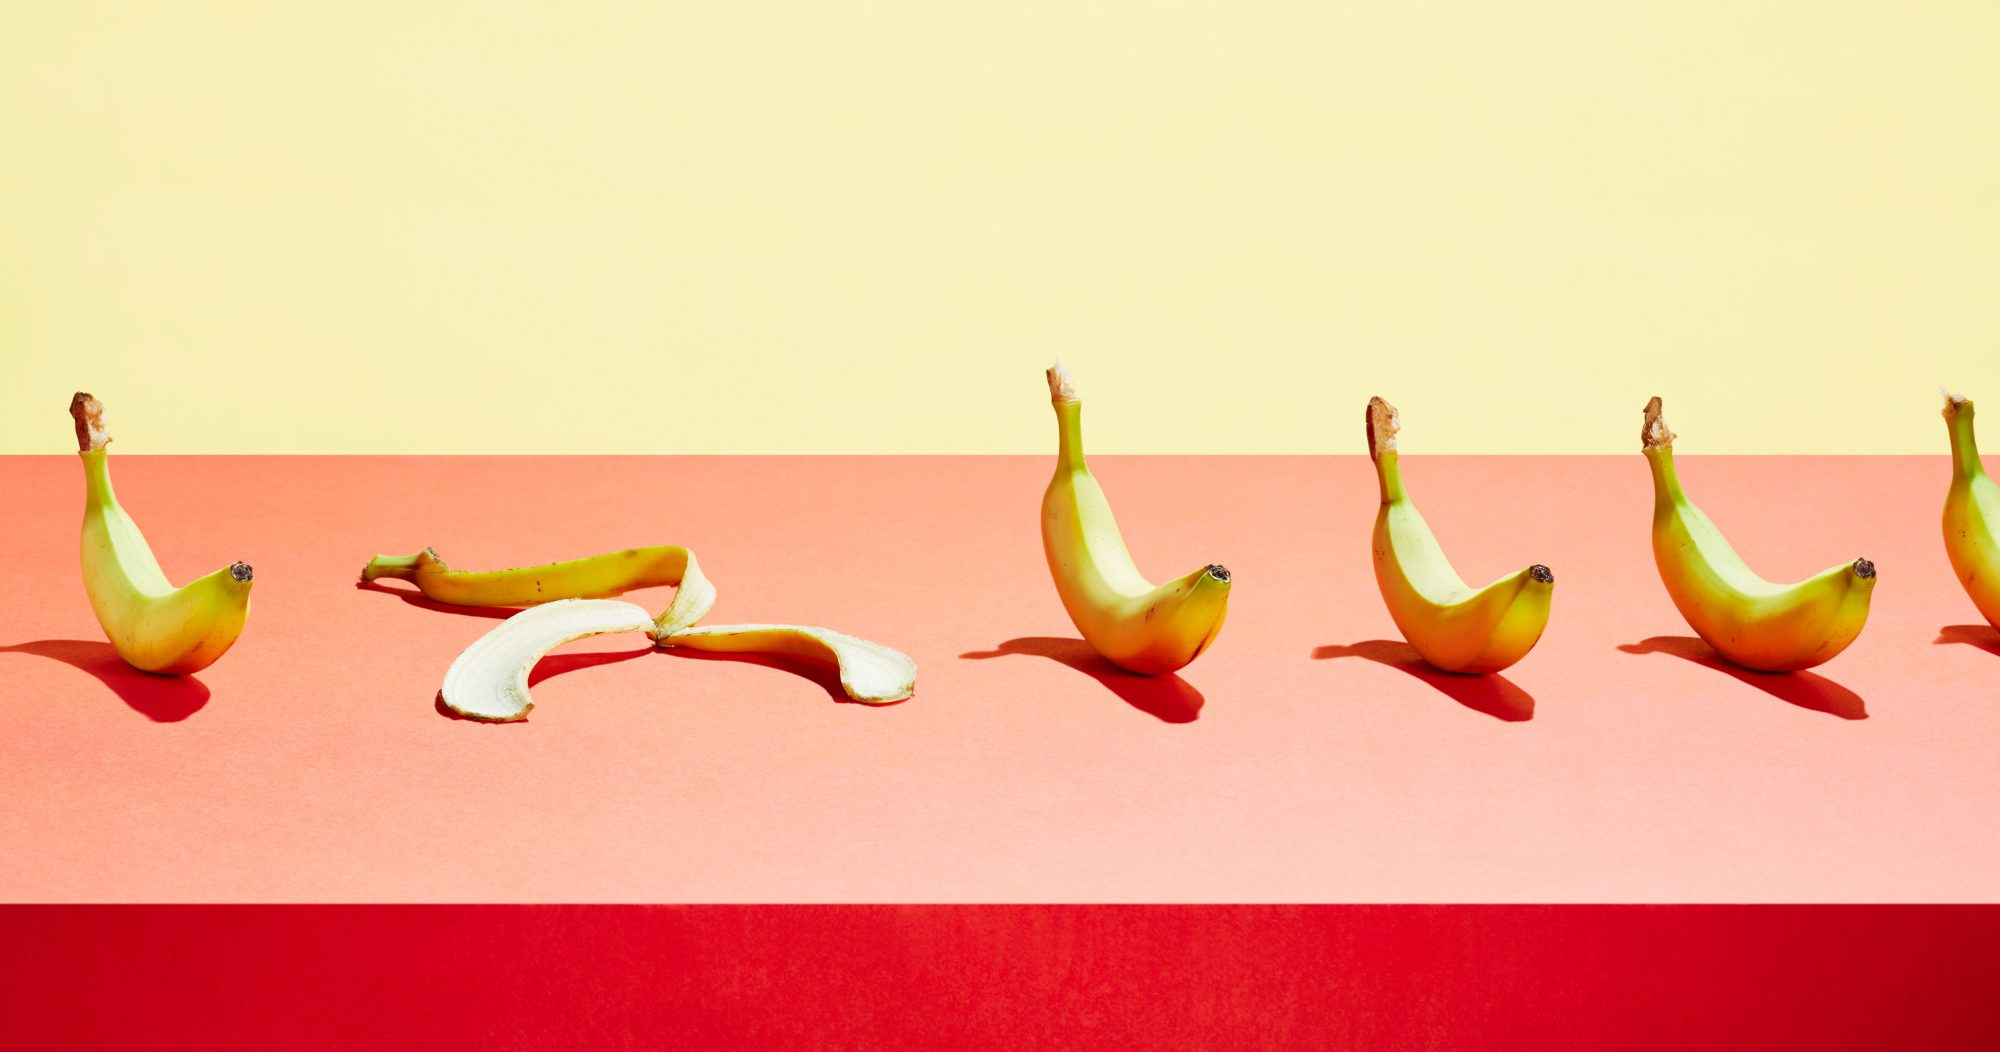 Banana_Peel_And_Bananas_In_A_Row